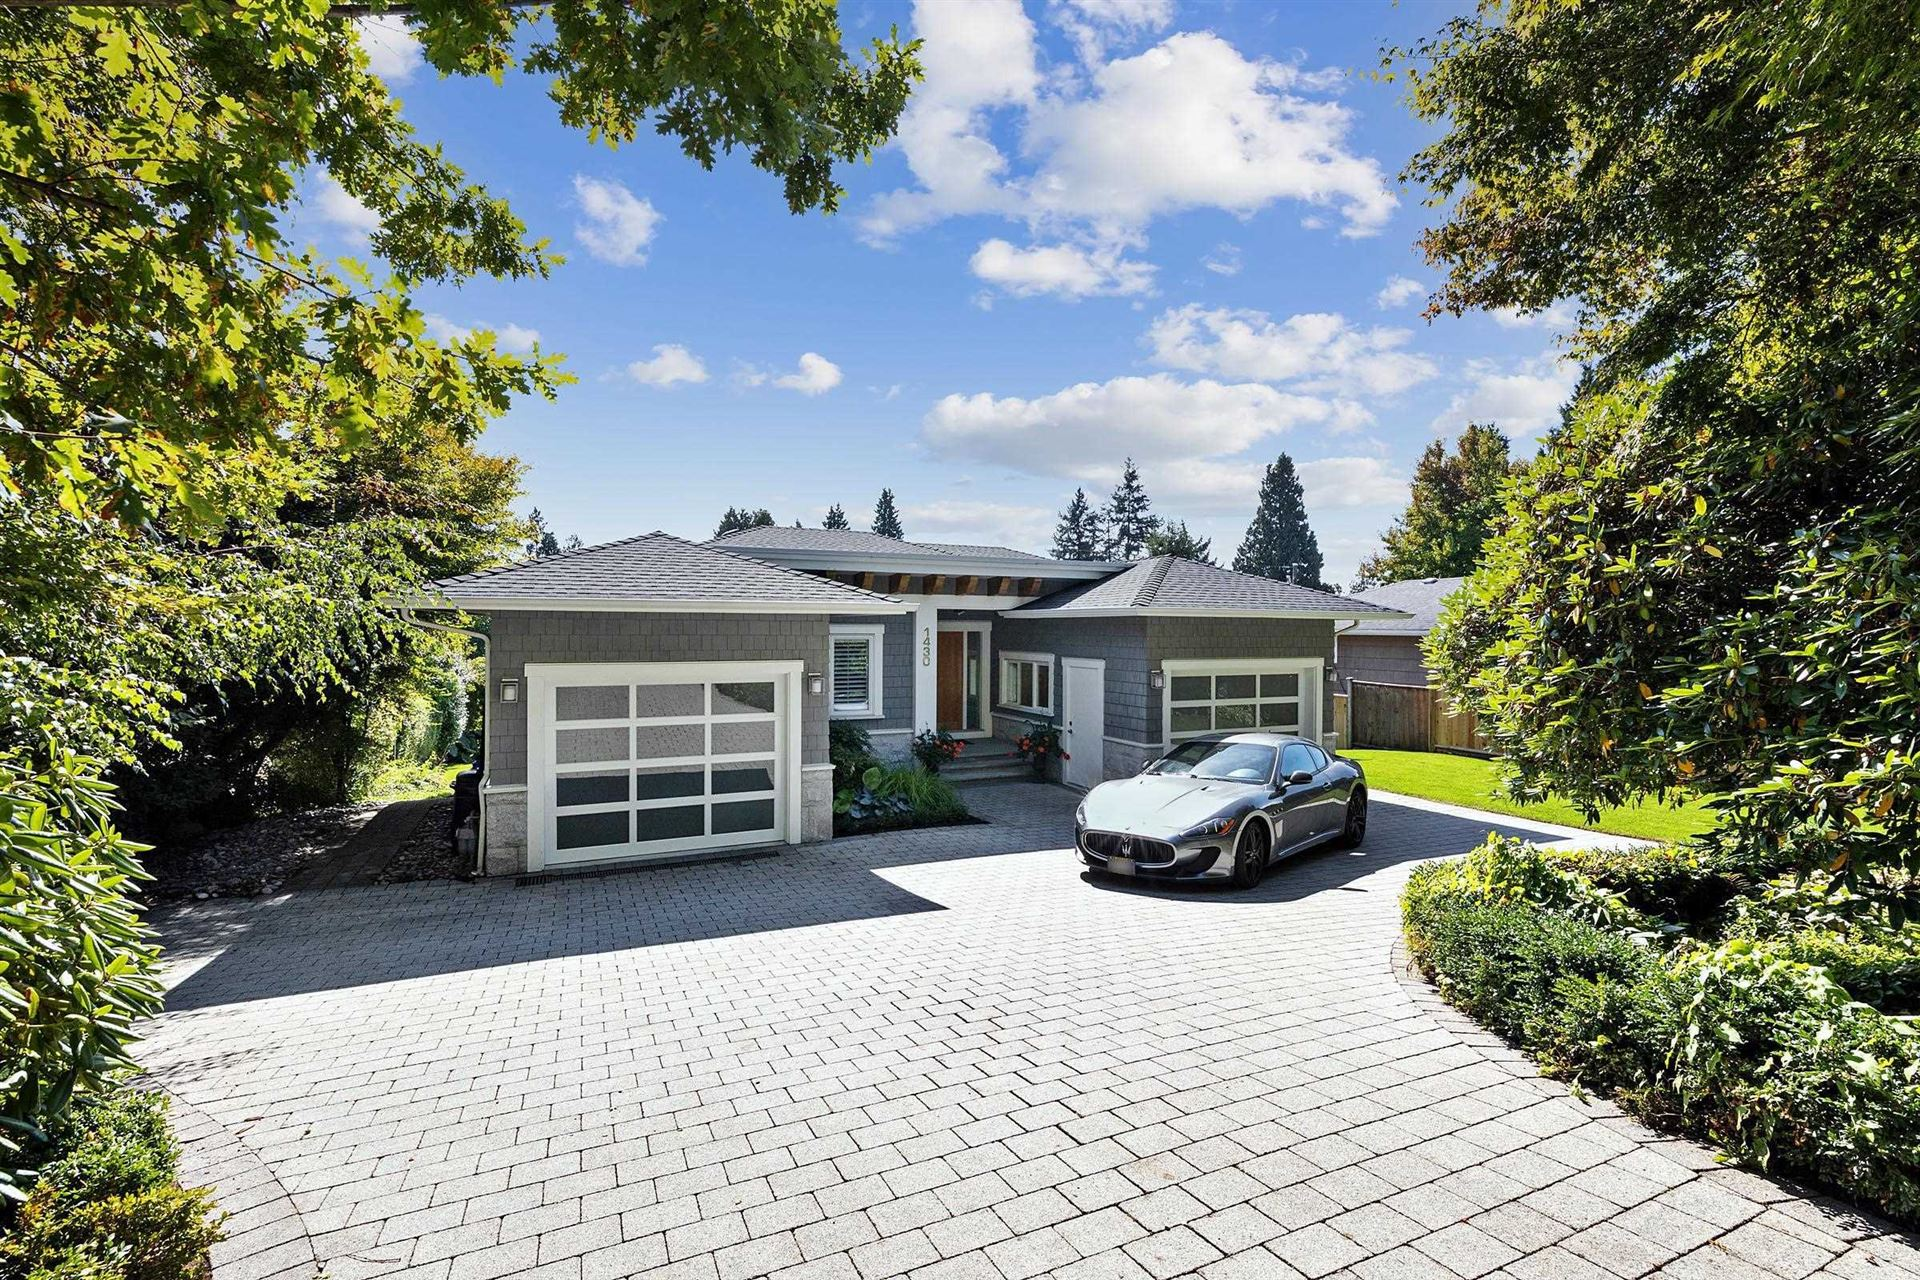 Photo of 1430 QUEENS AVENUE, West Vancouver, BC V7T 2H9 (MLS # R2617305)